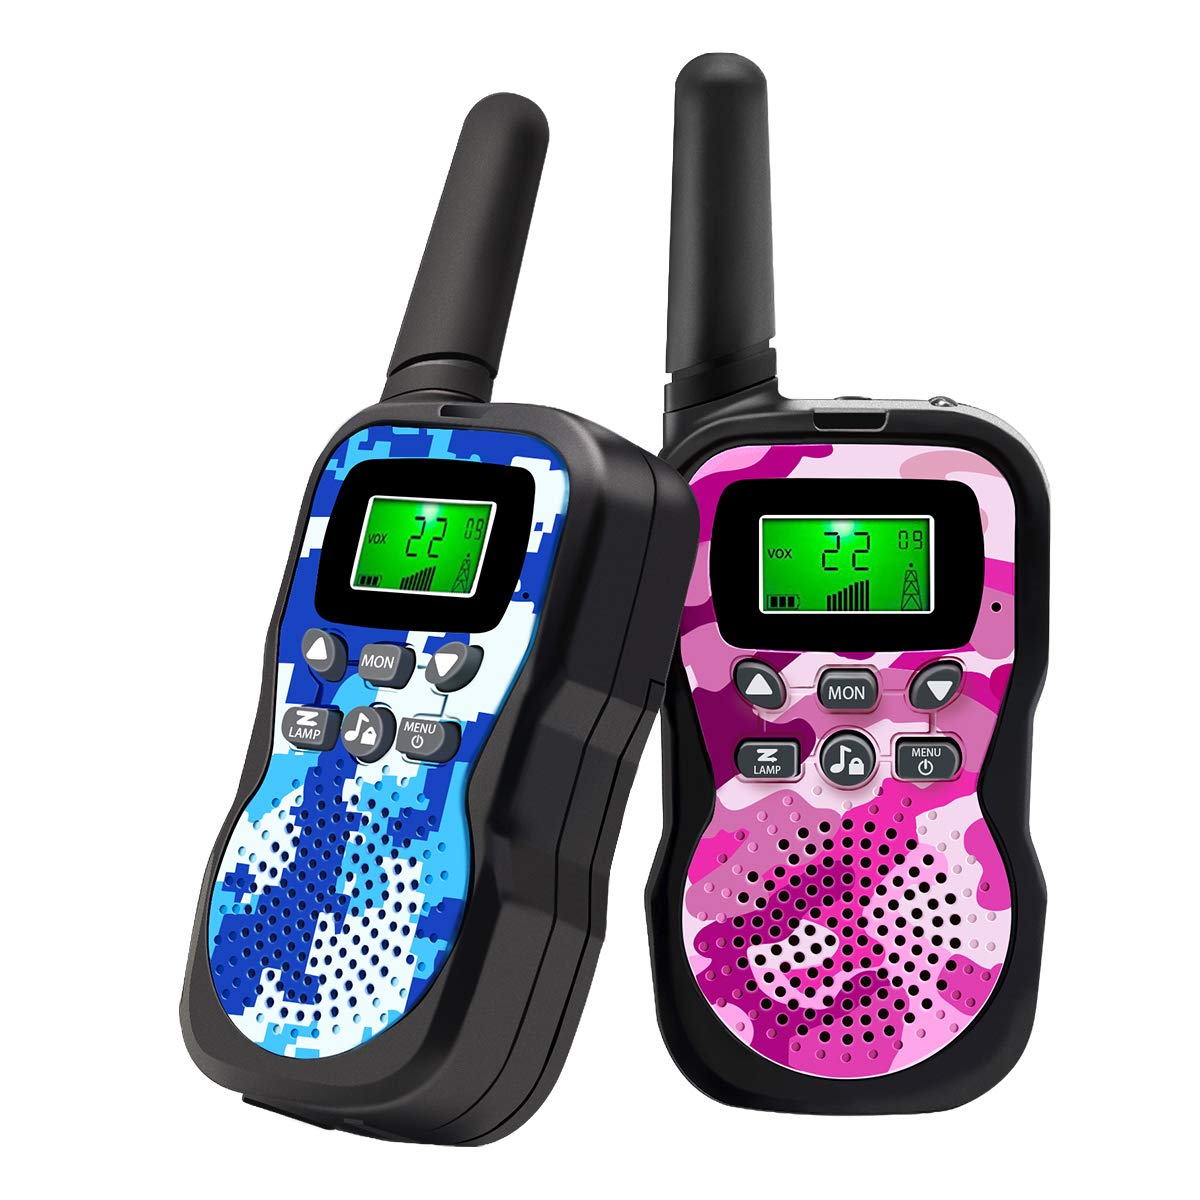 Walkie Talkies For Kids , Range Up to 3 Miles With Backlit LCD Display And Flashlight Walkie Talkies For Boys Girls Outdoor Toys For 3-12 Year Old Boys Girls Bset Gifts For 3-12 Year Old Boys Girls 71-kD-7Jr7L